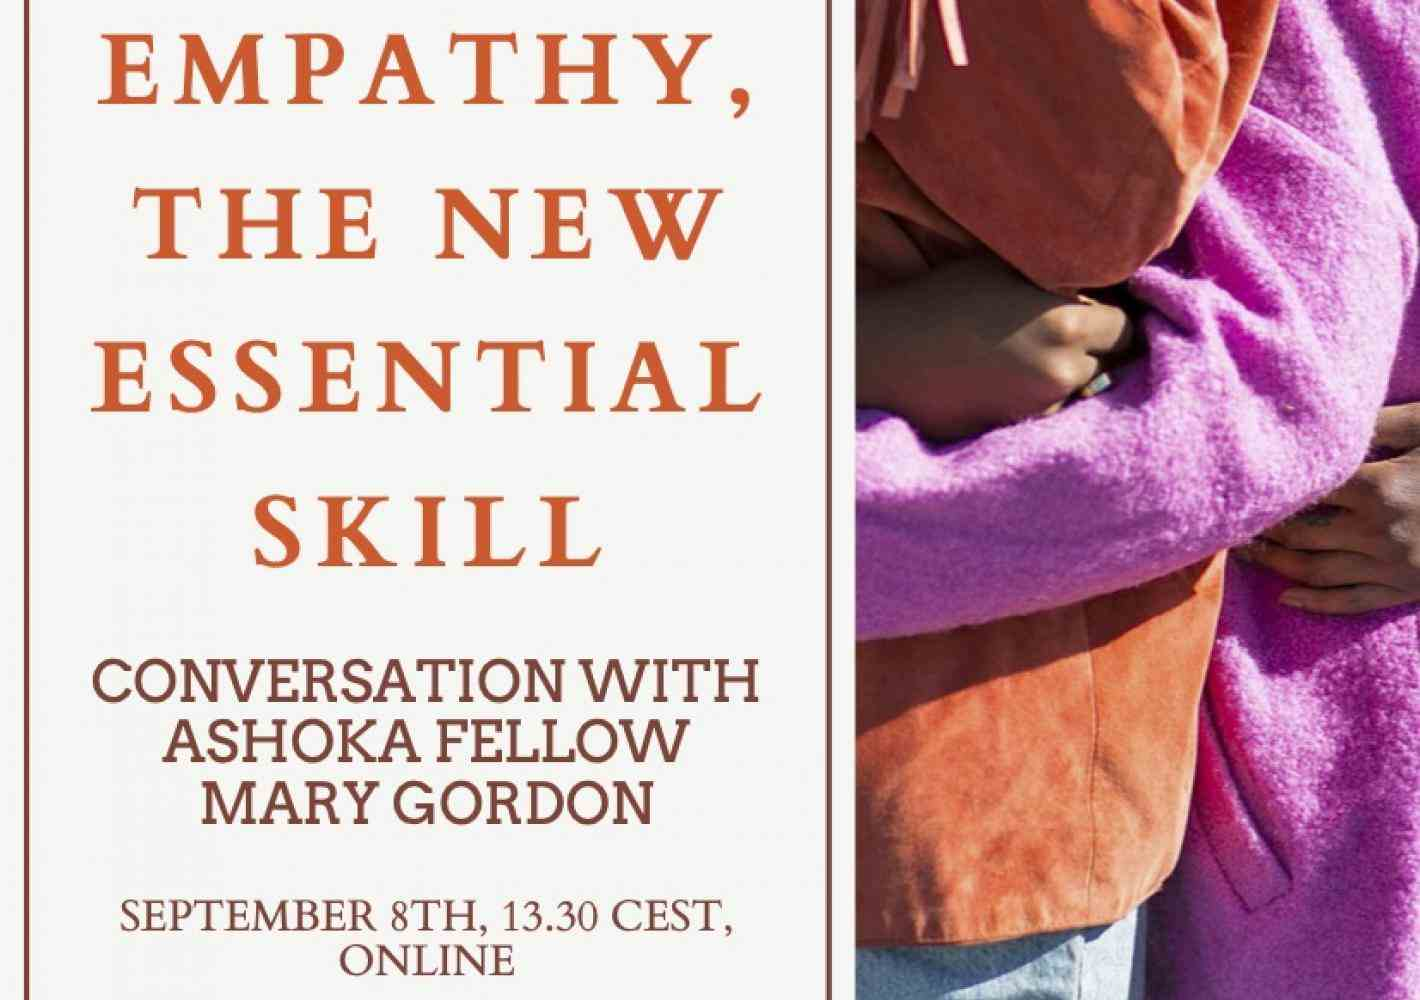 Empathy, inspirational talk, Mary Gordon